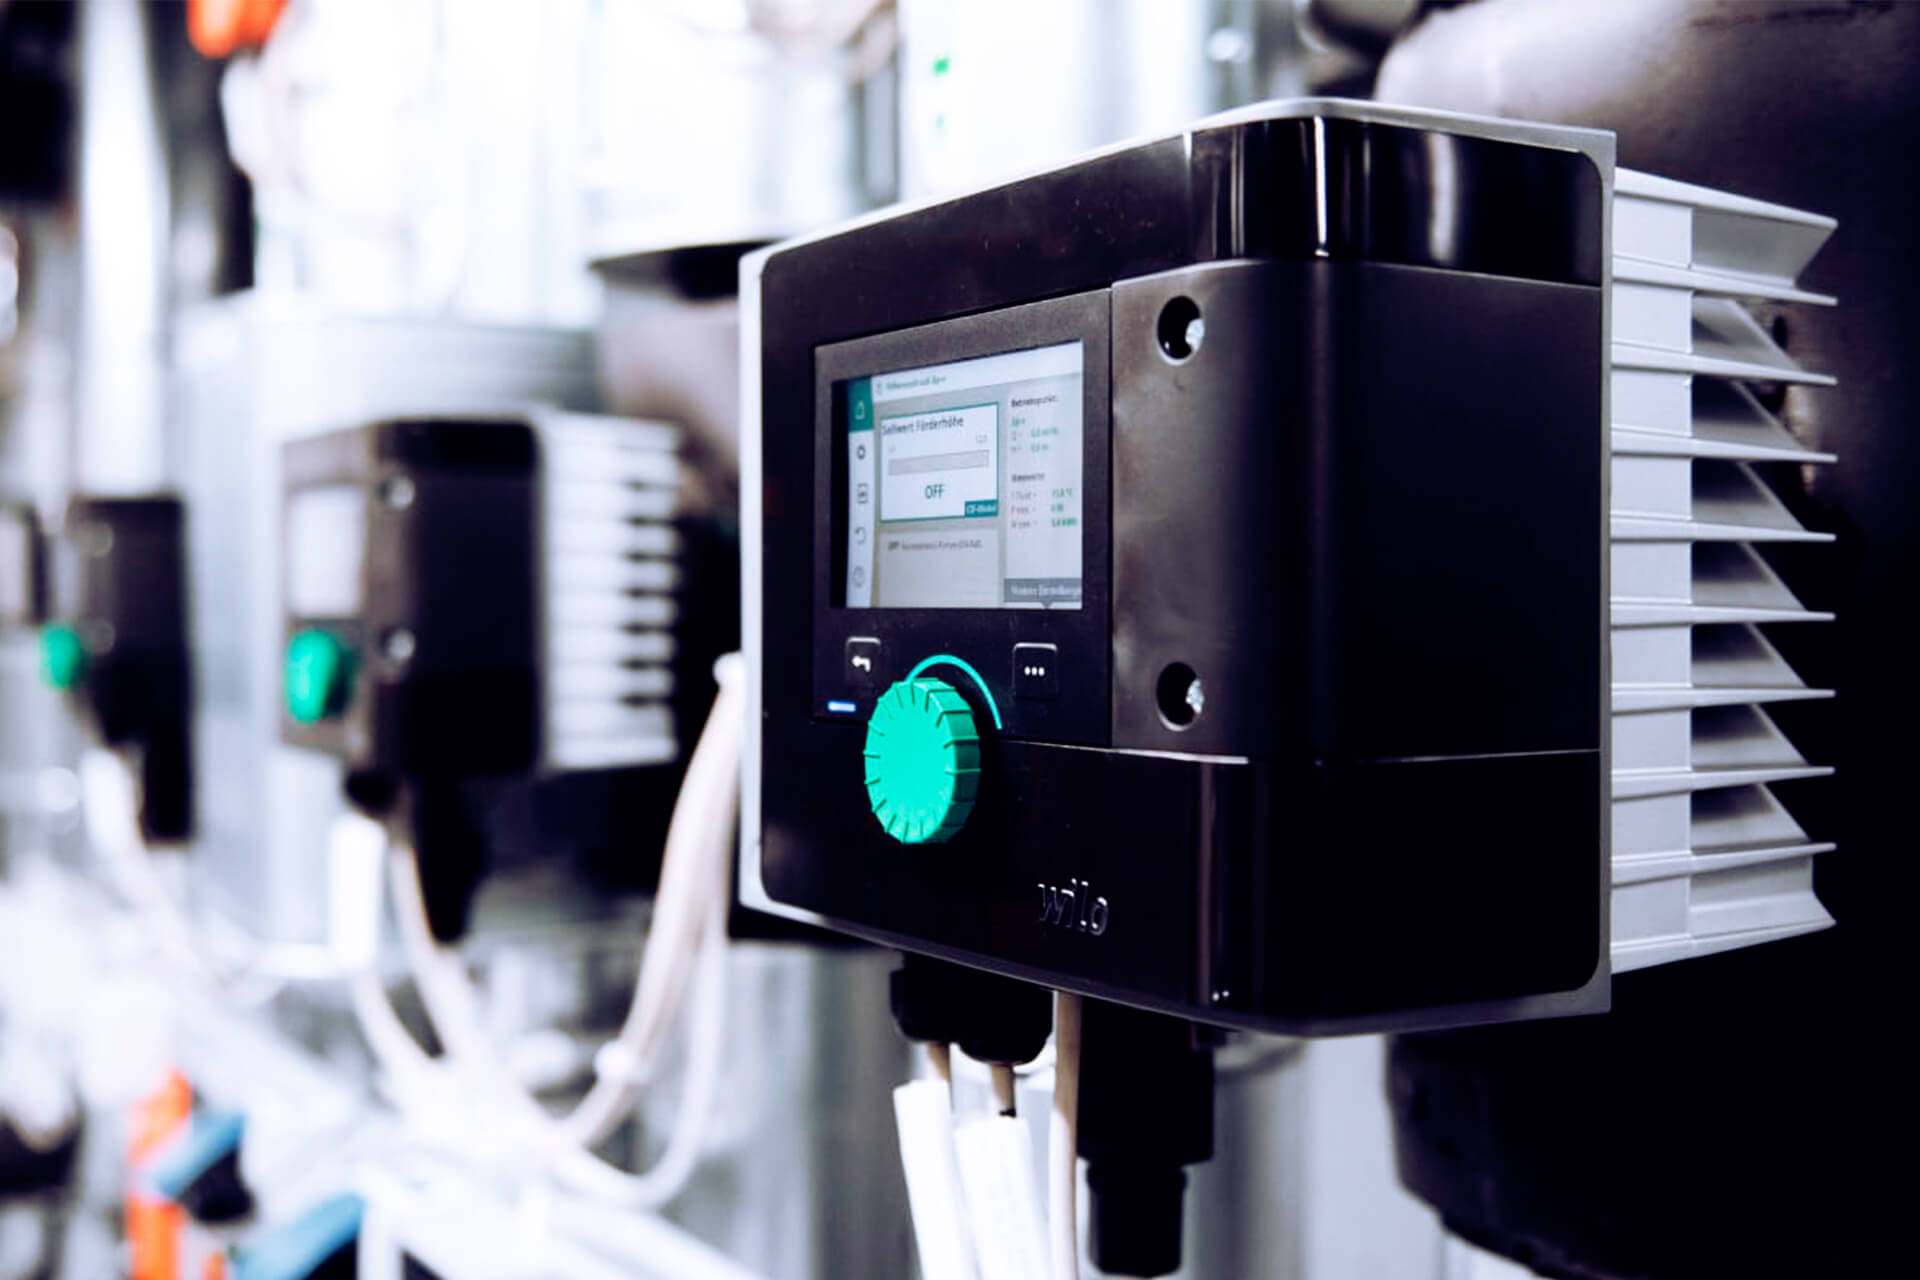 Product image of a Wilo pump system | eggheads.net